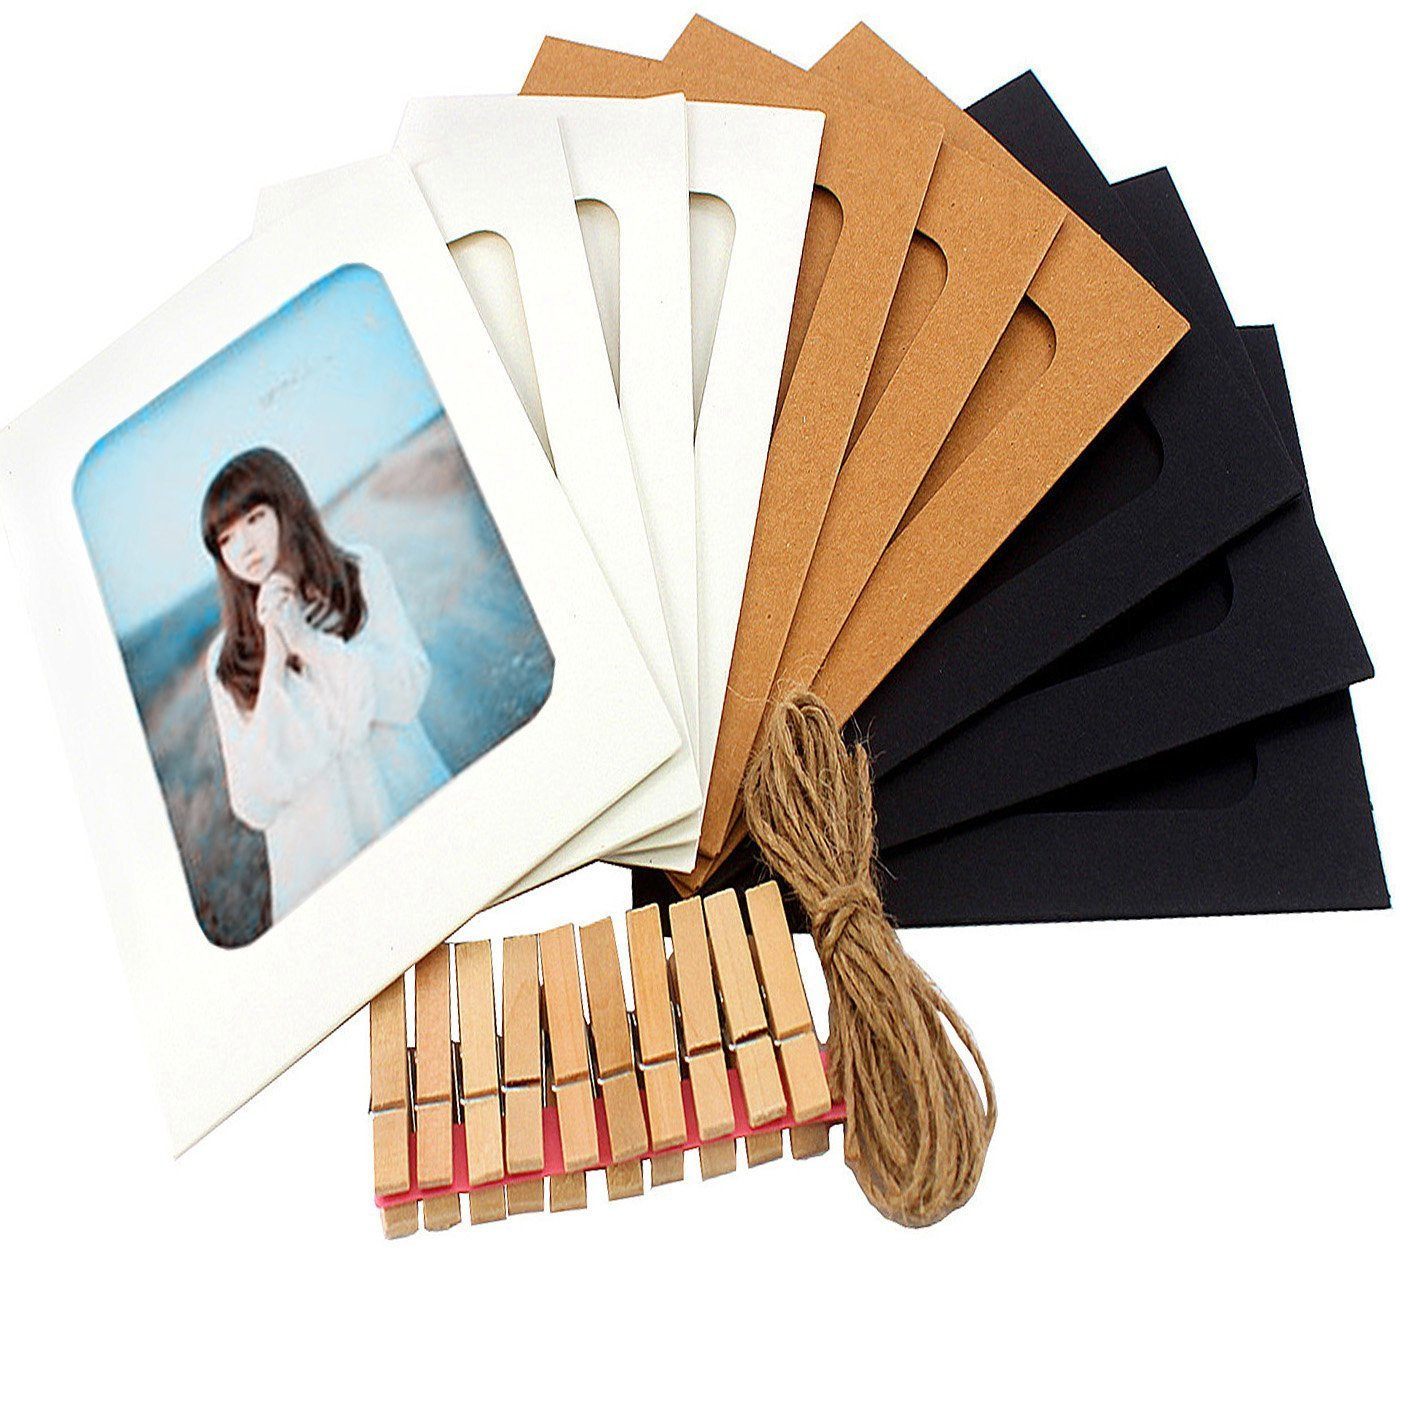 Paper Photo Frames 4x6 DIY Collage for Wall Hanging Decorative Lightweight Cardboard Handicraft 10 Pieces